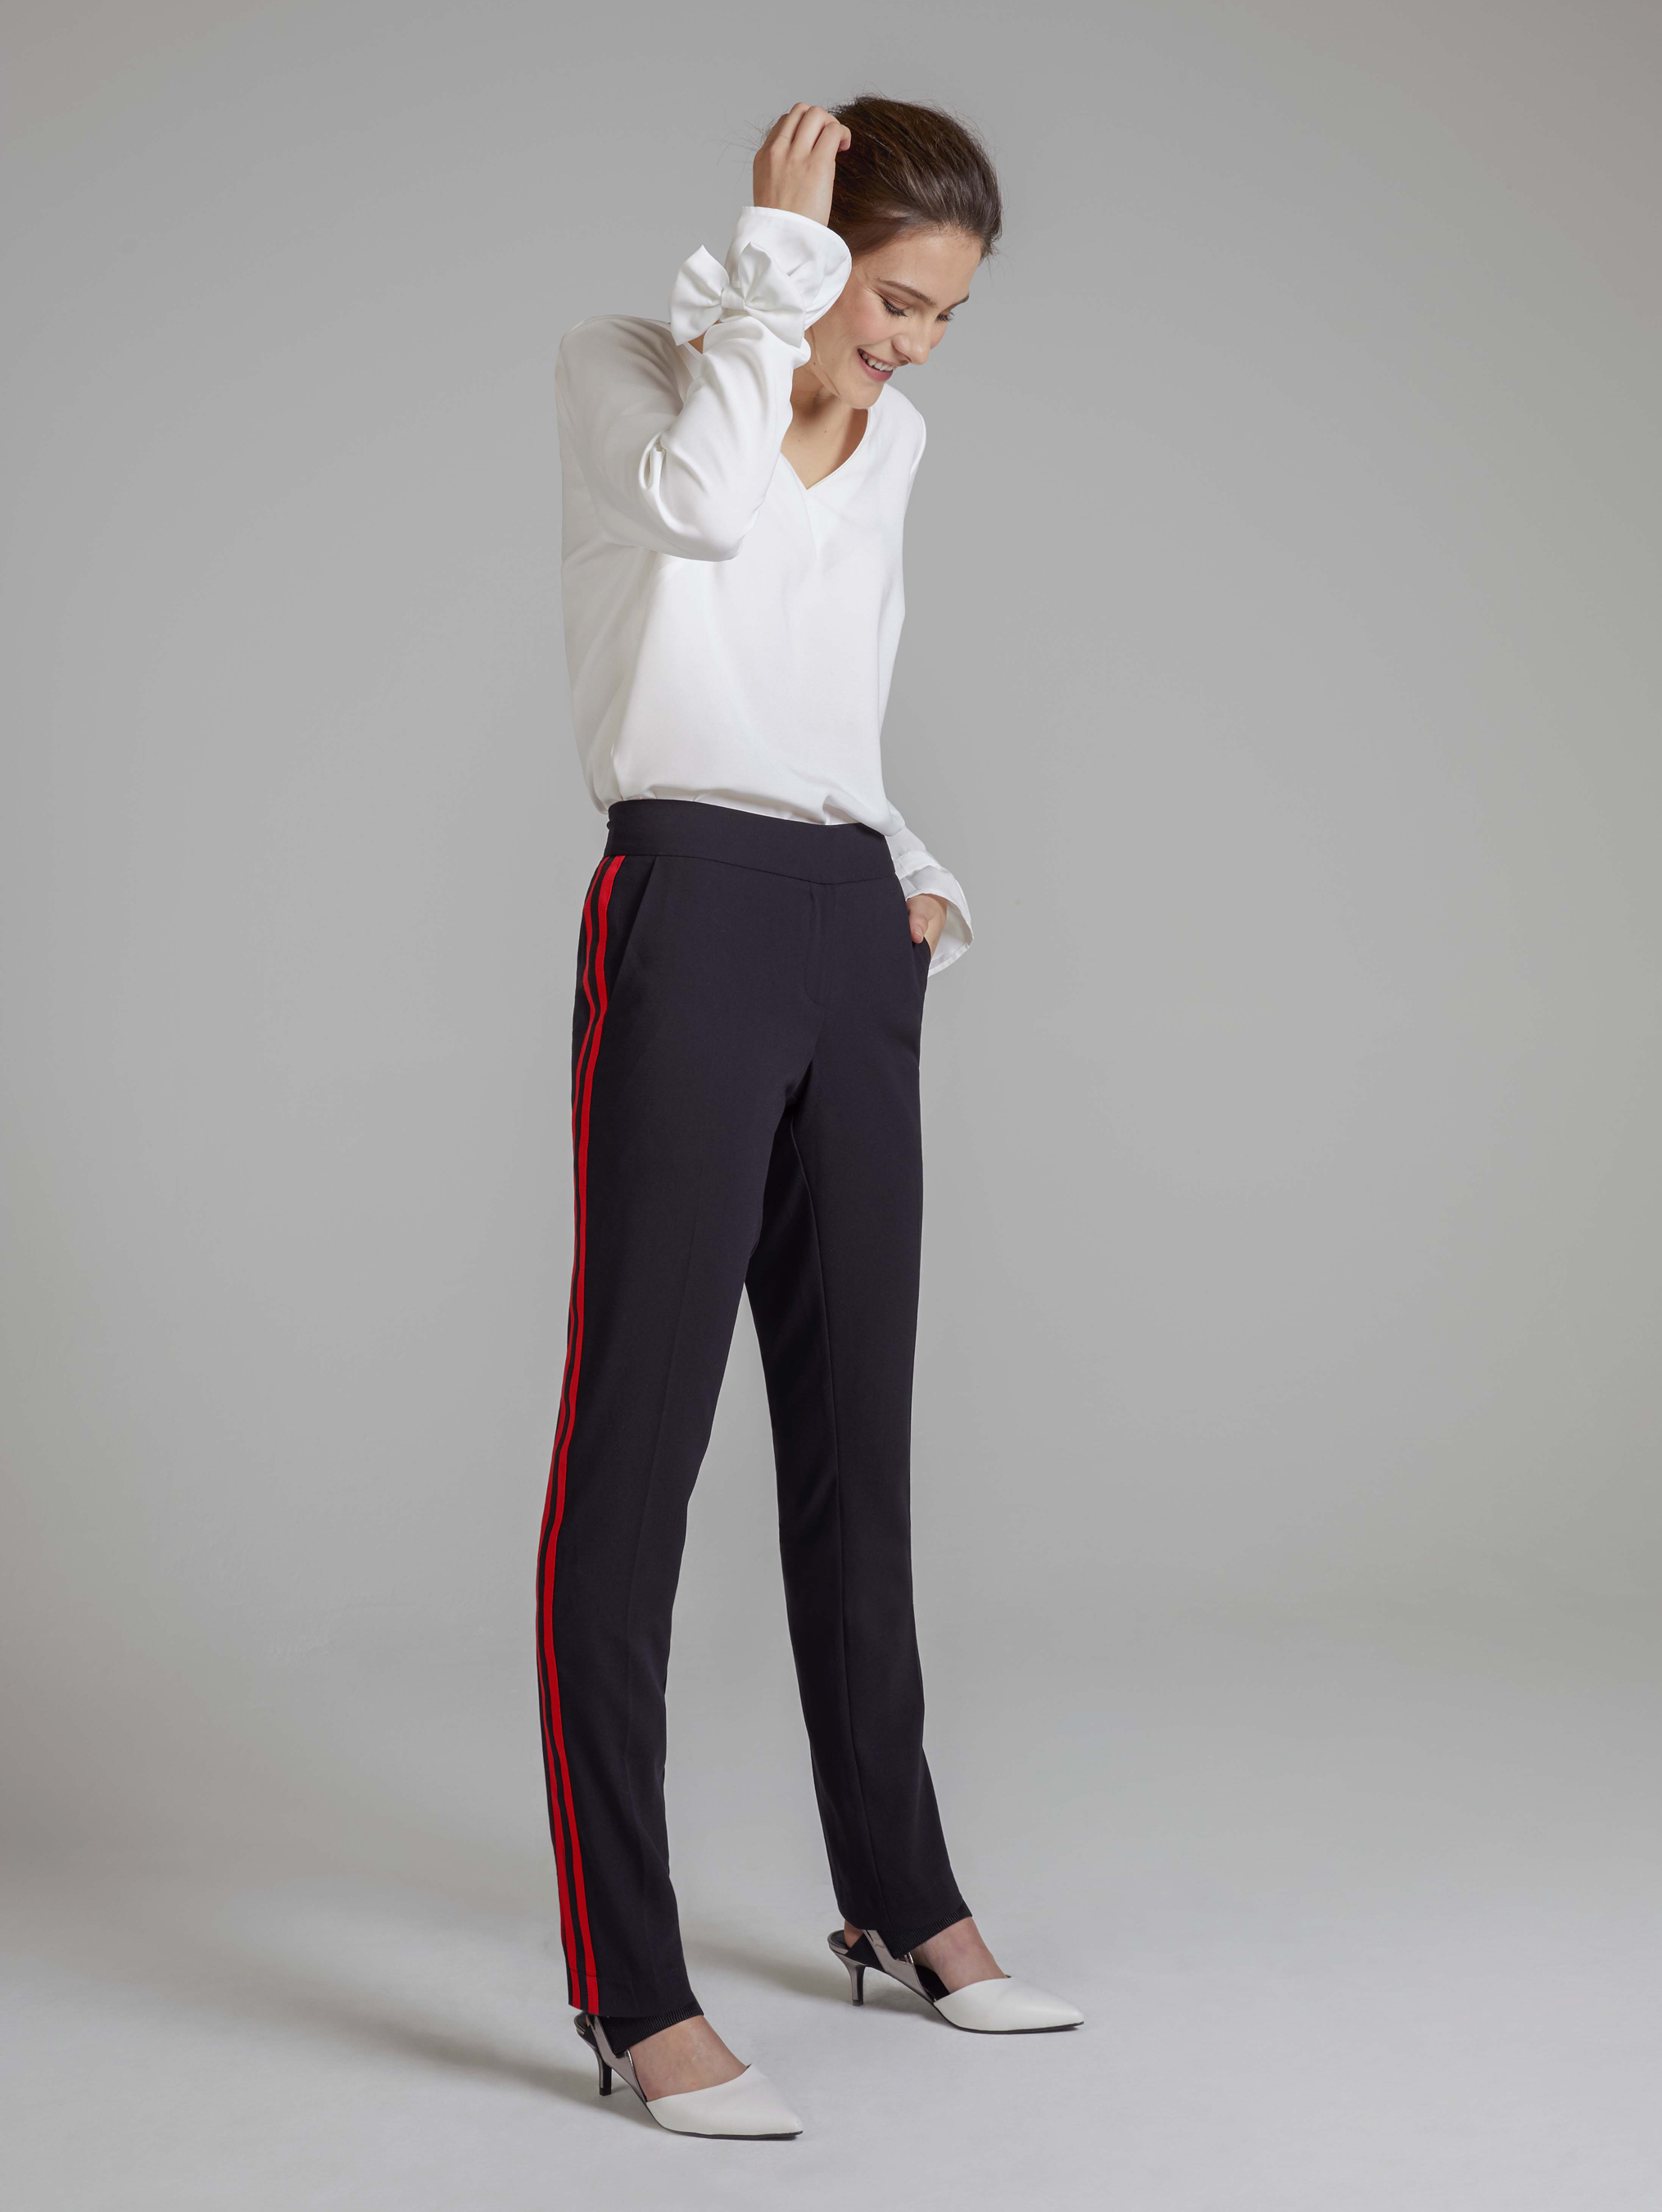 Long Tall Sally Bow Sleeve Blouse, Side Stripe Crepe Trousers and LTS Rebecca Kitten Heel Slingback